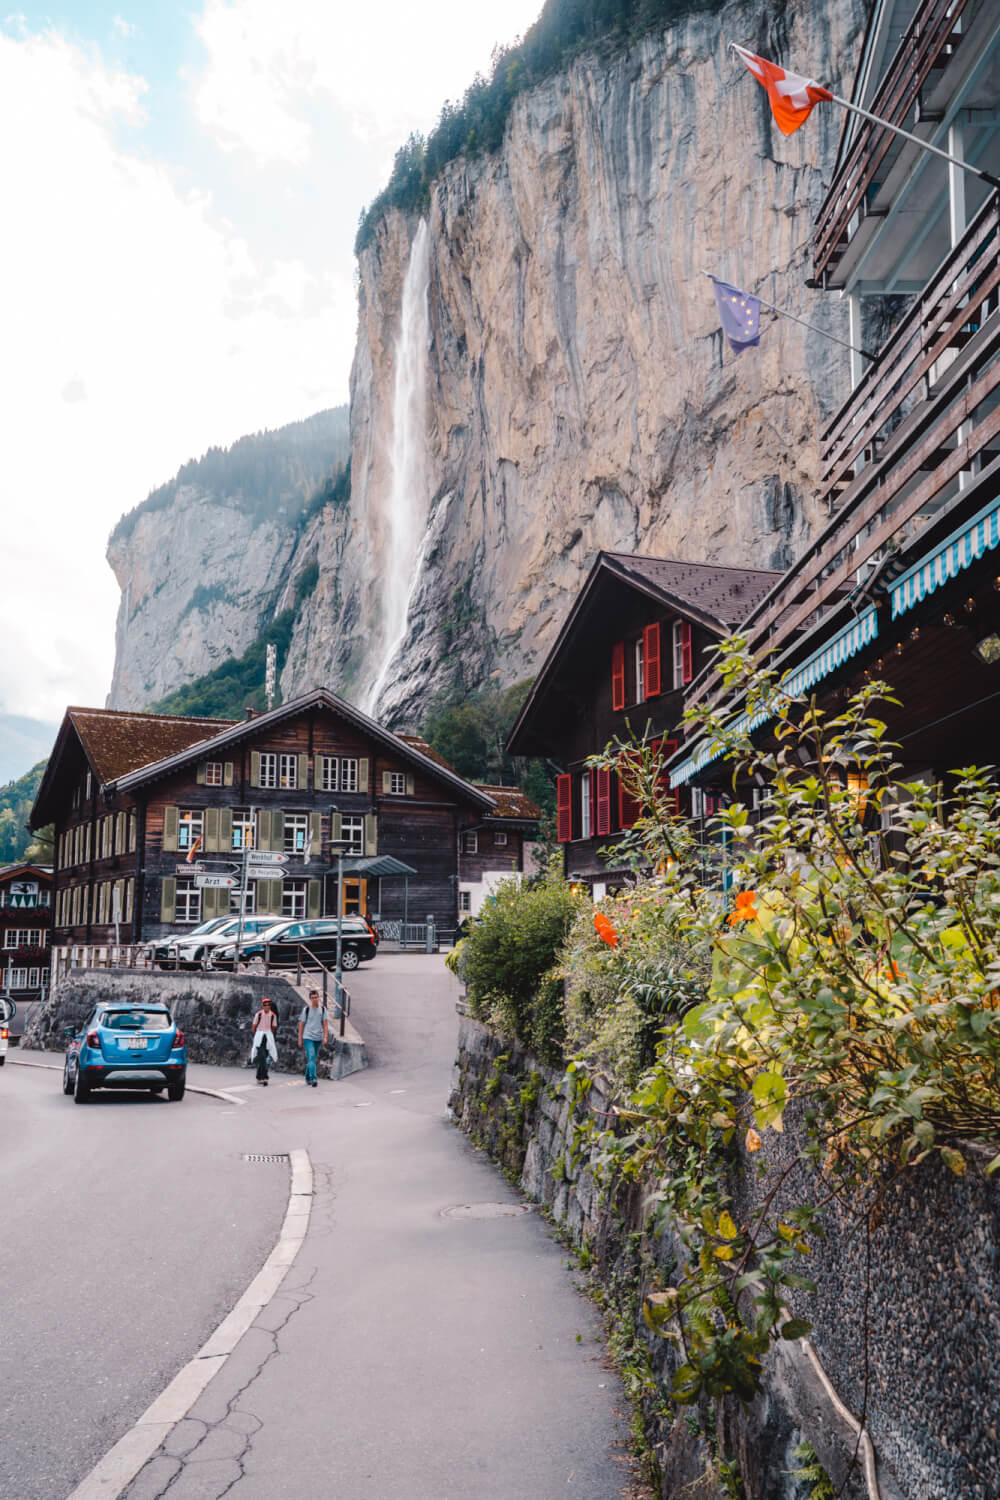 View of Lauterbrunnen, Switzerland from the main street.